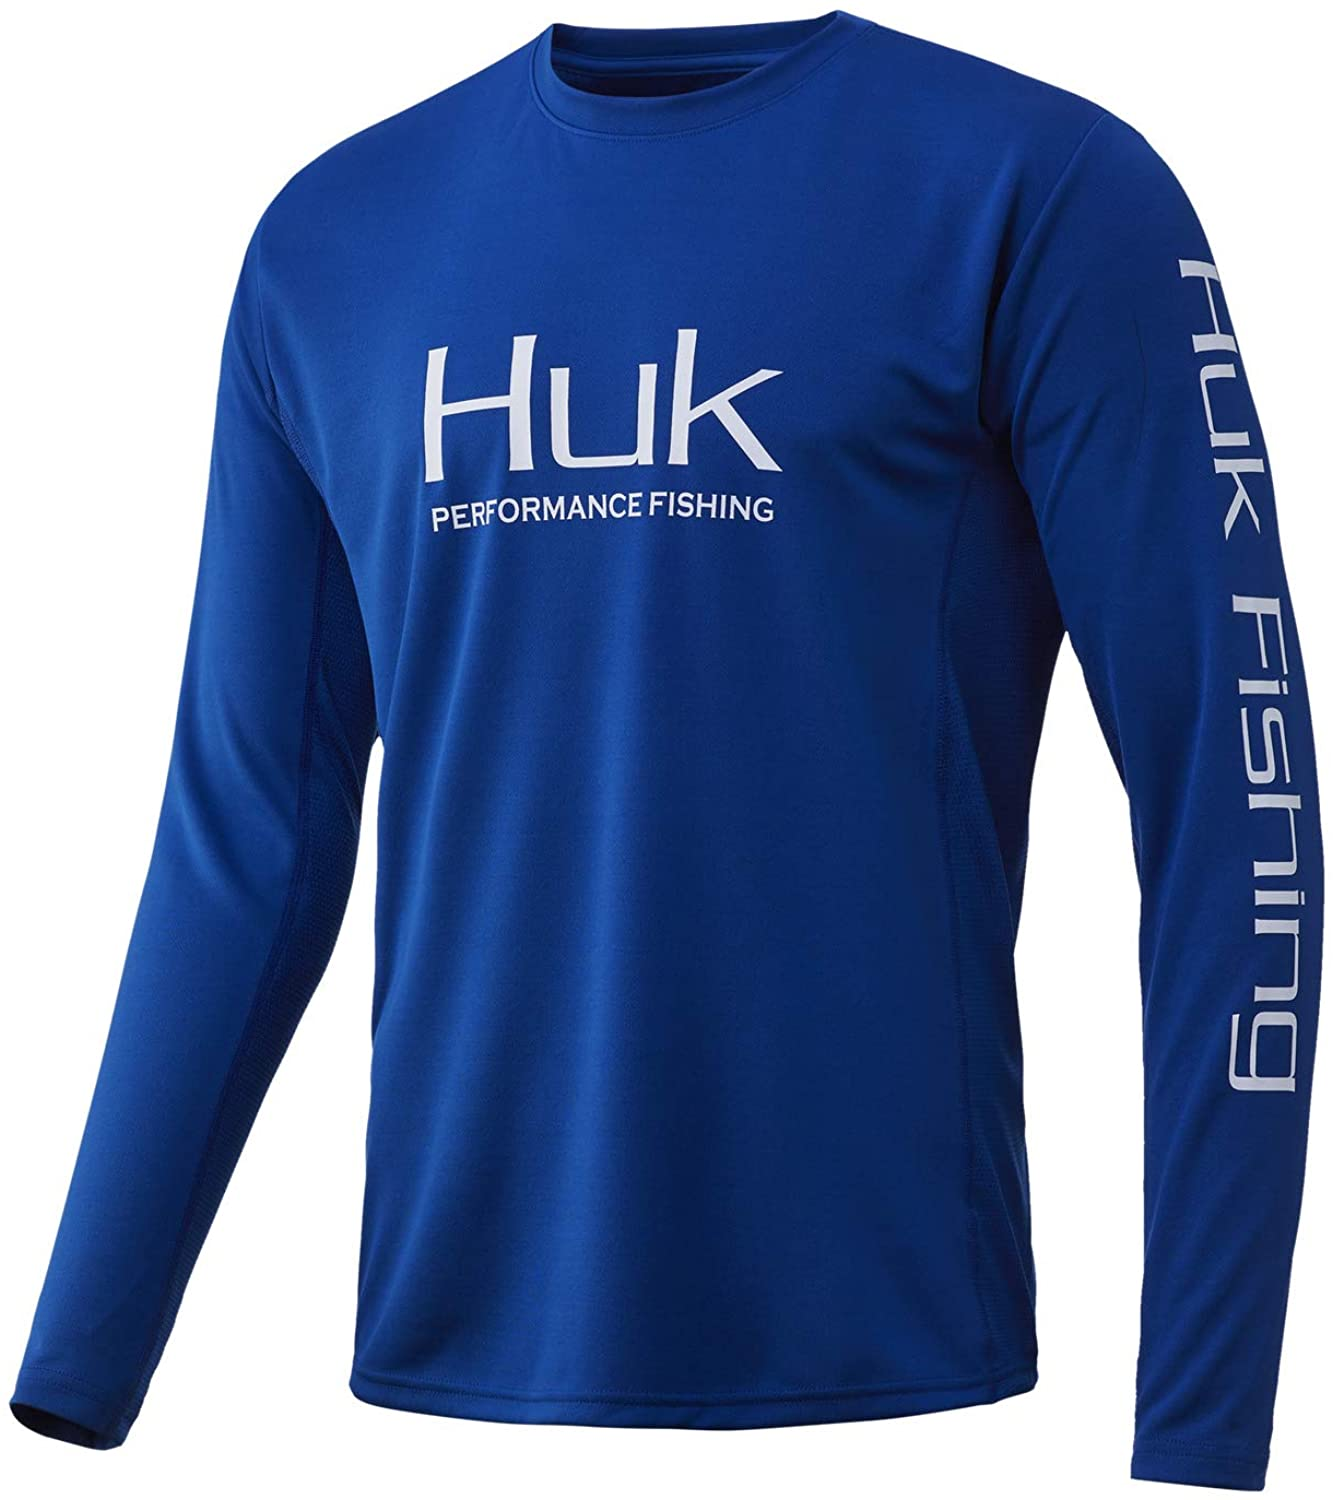 Men's Huk Icon X Long Sleeve Shirt in Huk Blue from the front